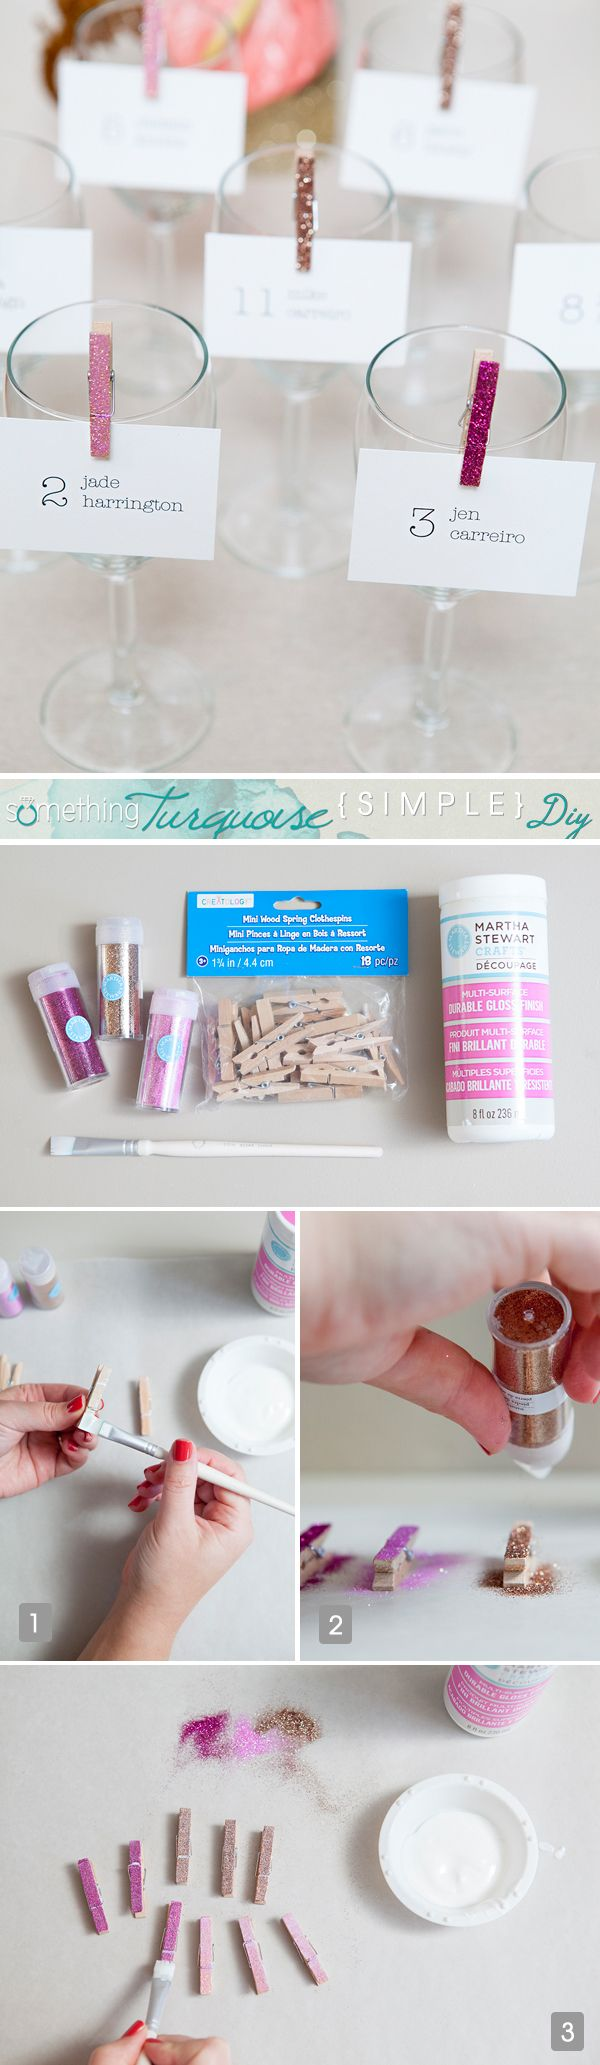 learn how to easily diy glitter clothespins diy wedding place cardswedding